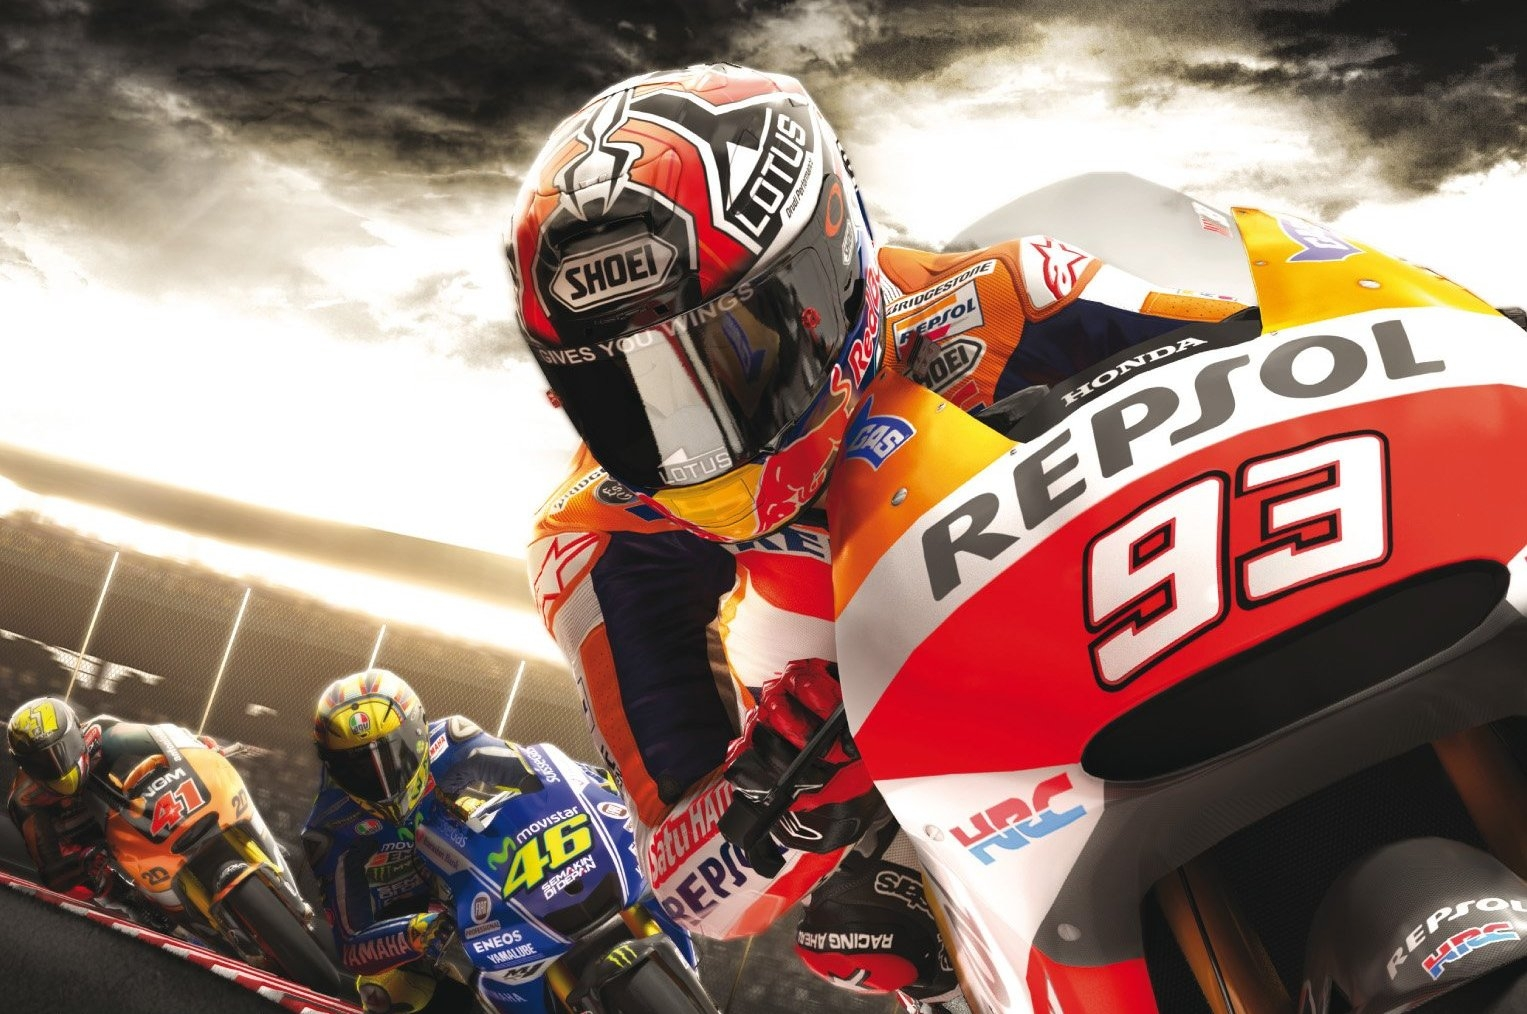 'Hitting the Apex' A documentary on MotoGP – releasing 2nd Sep